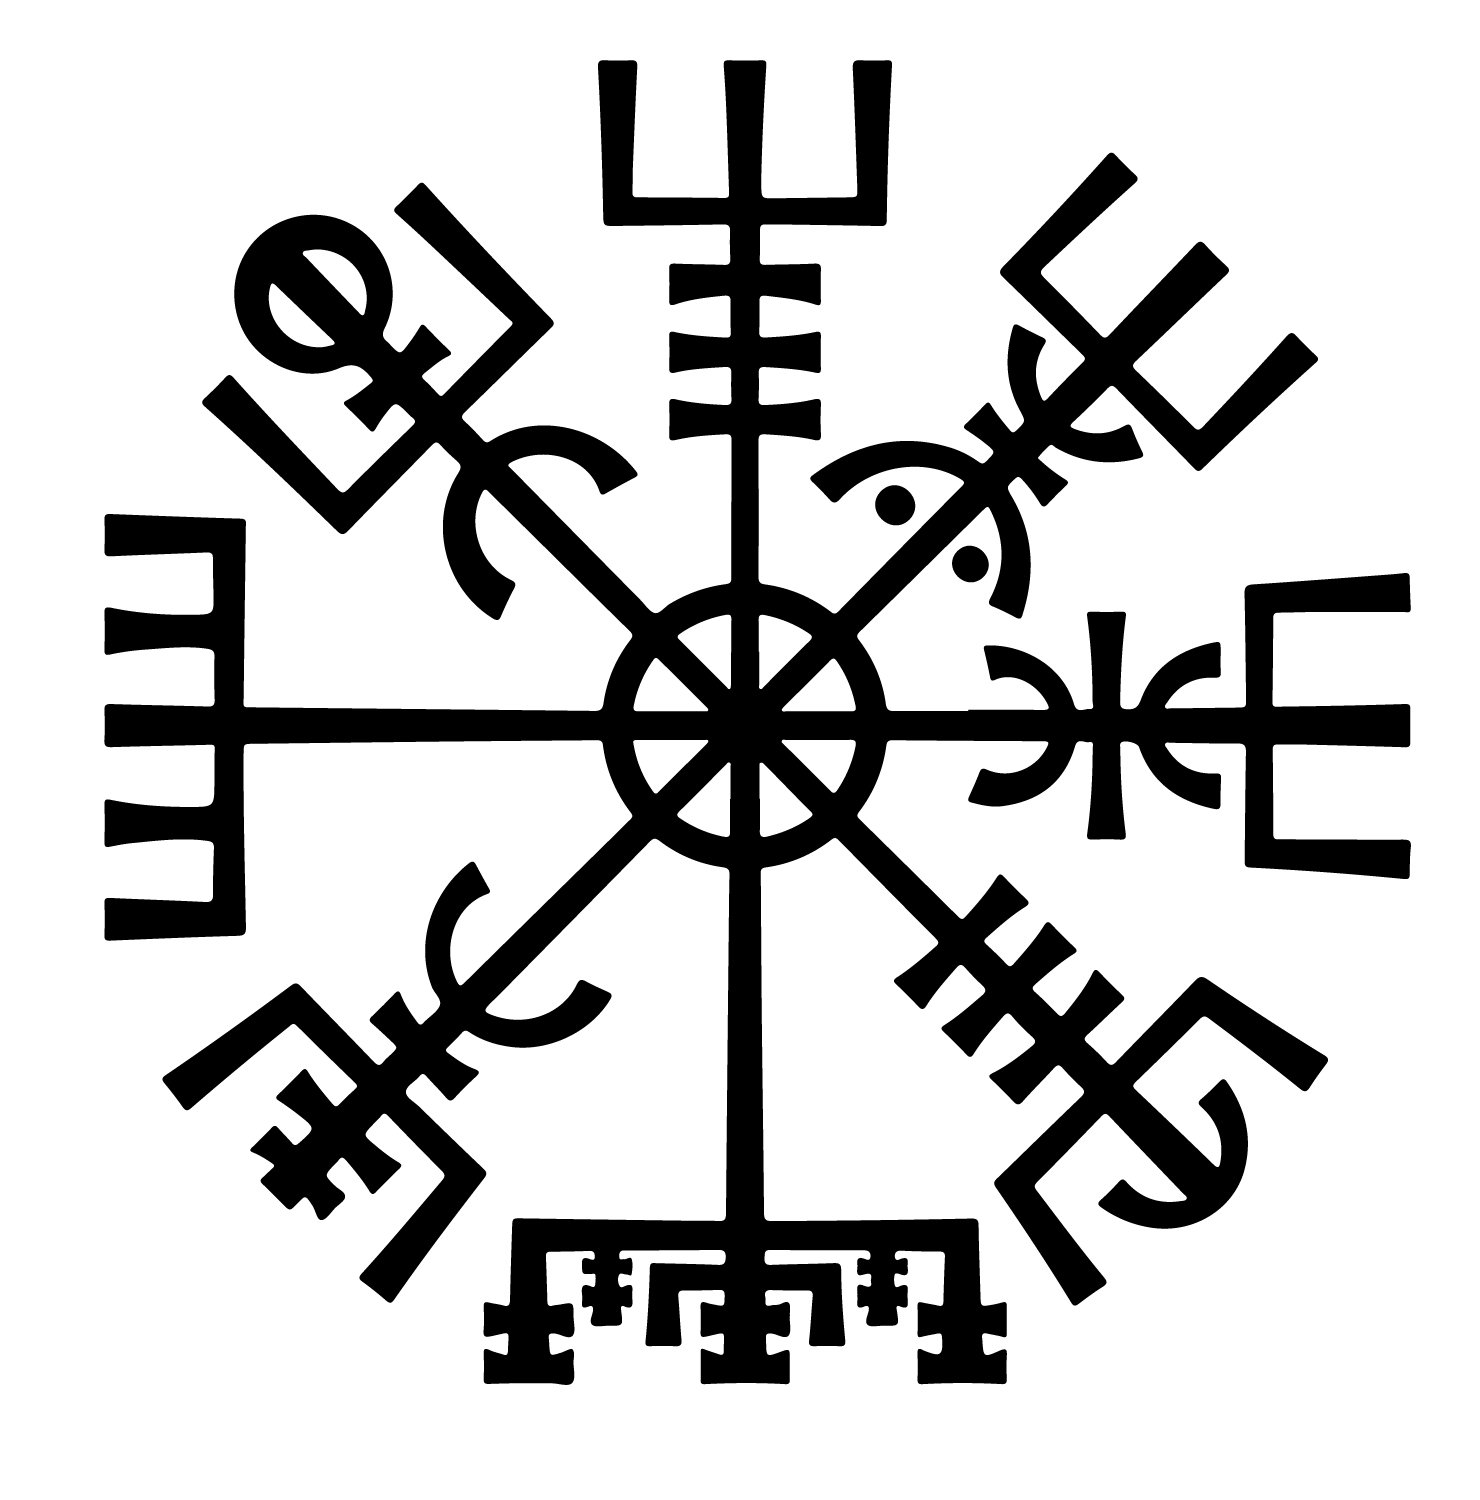 Vegvisir the symbol of guidance and protection its meaning in the galdrabok it is written that this symbol would help its wearer to not get lost and find their way back according to the galdrabok biocorpaavc Gallery